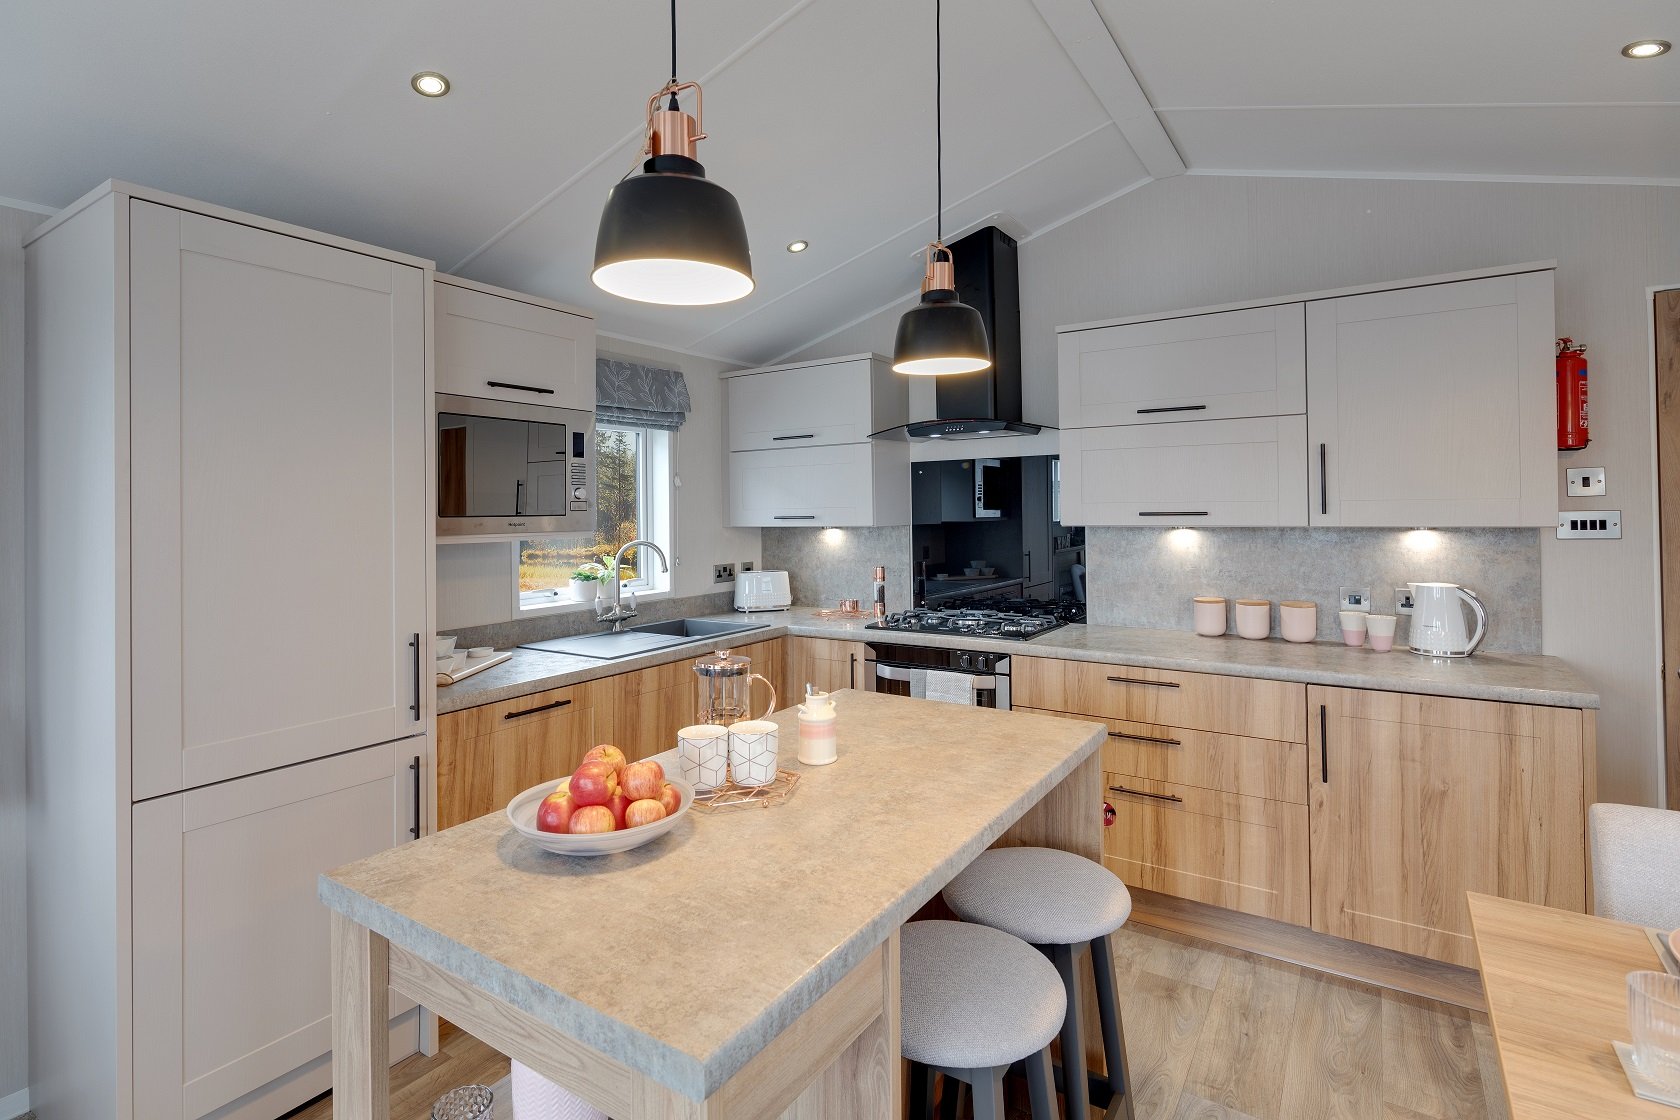 Swift Moselle Lodge: Static Caravans and Holiday Homes for Sale on Caravan Parks, Thirsk, North Yorkshire Image 2